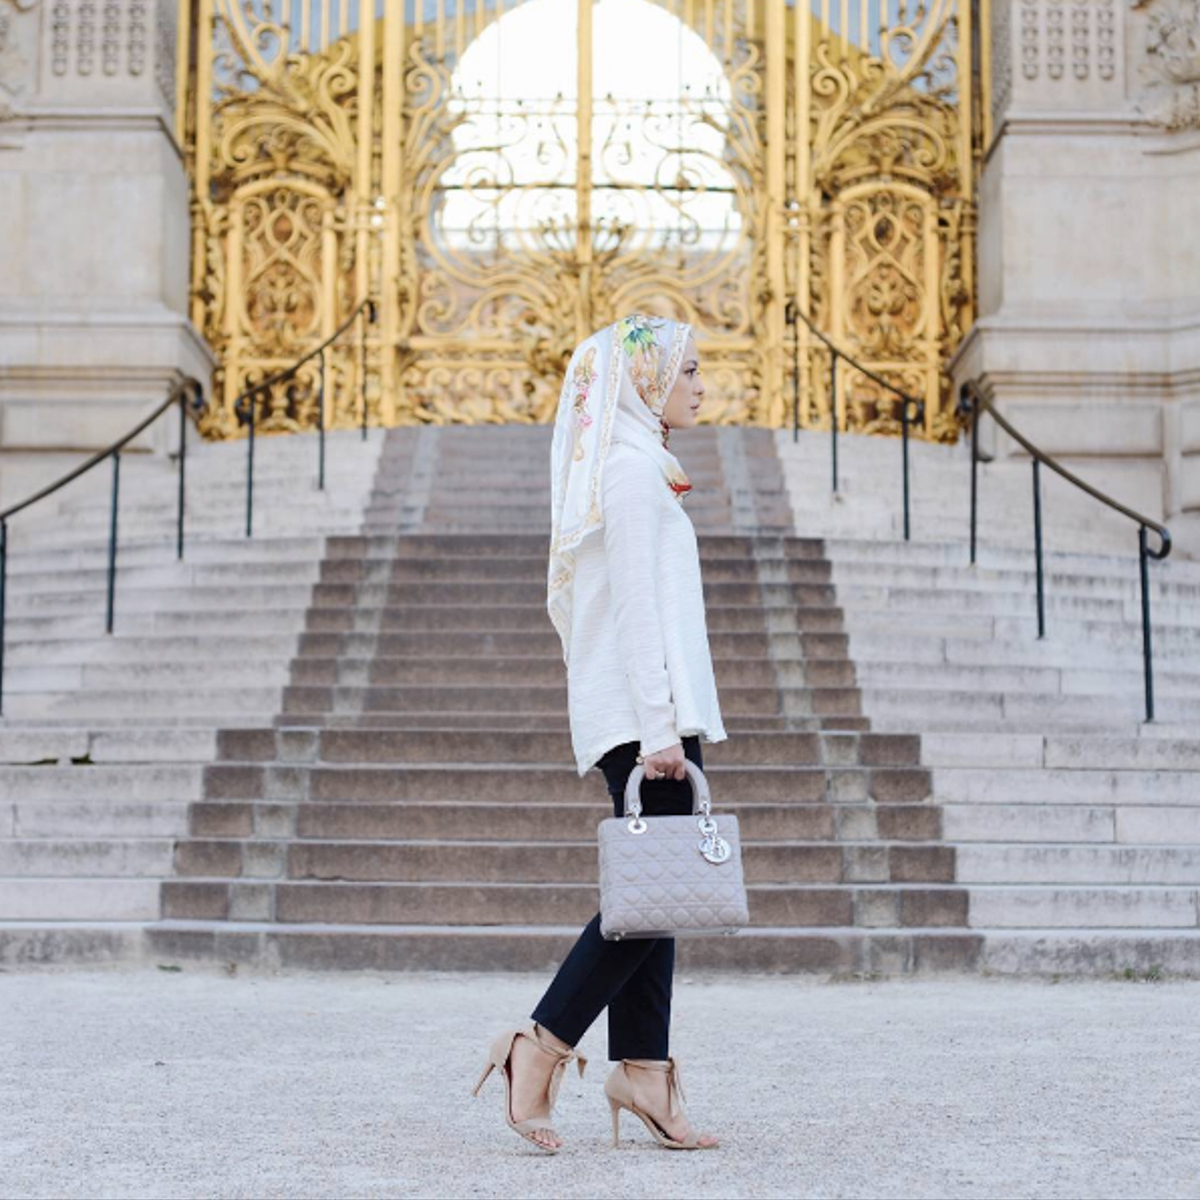 Vivy is breathing the Parisian air while standing in front of the iconic golden gate of Grand Petit Palais.Picture Credit to @thedUCkgroup media